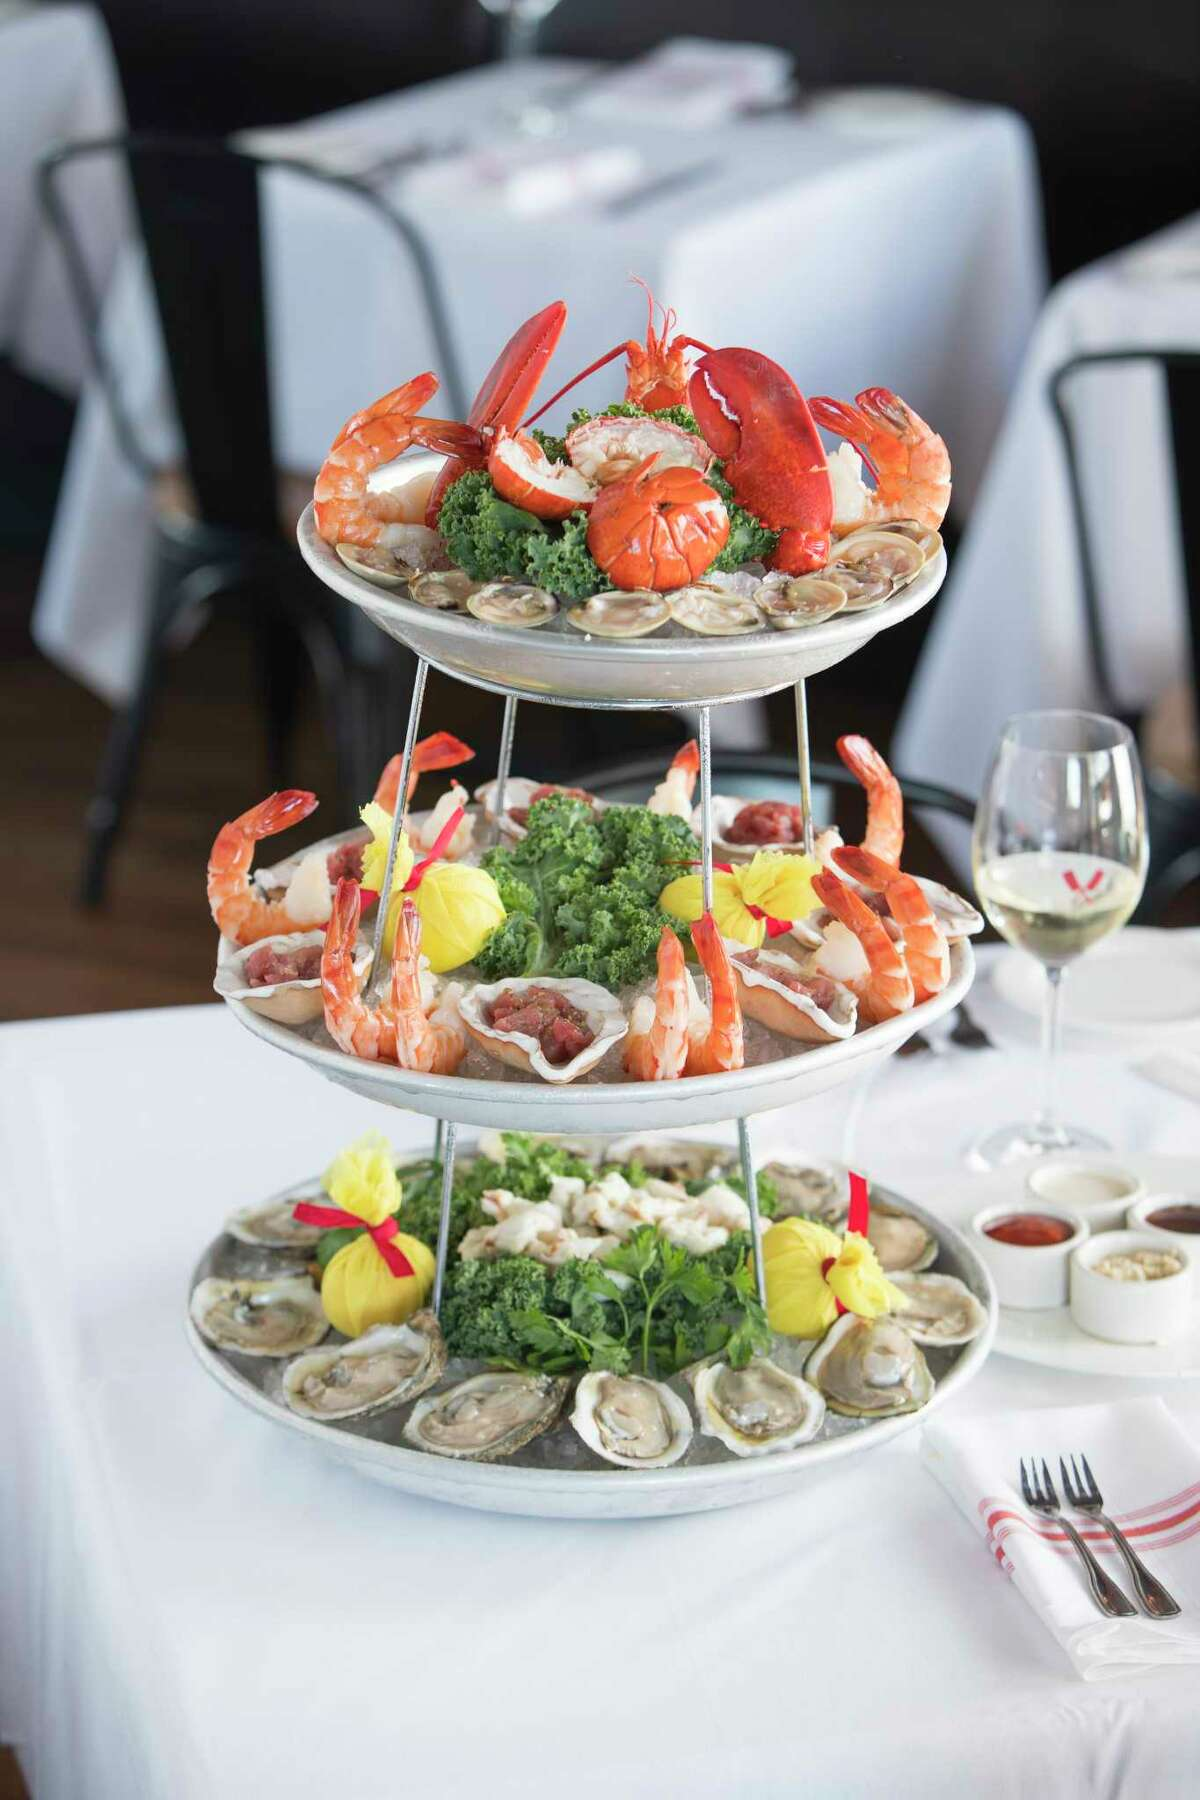 B&B Butchers & Restaurant (seafood tower shown) is one of the biggest doners to Houston Restaurant Weeks. The culinary fundraiser was in its last week when Harvey hit. Organizers decided to extend the event, which benefits the Houston Food Bank, to Sept. 30.